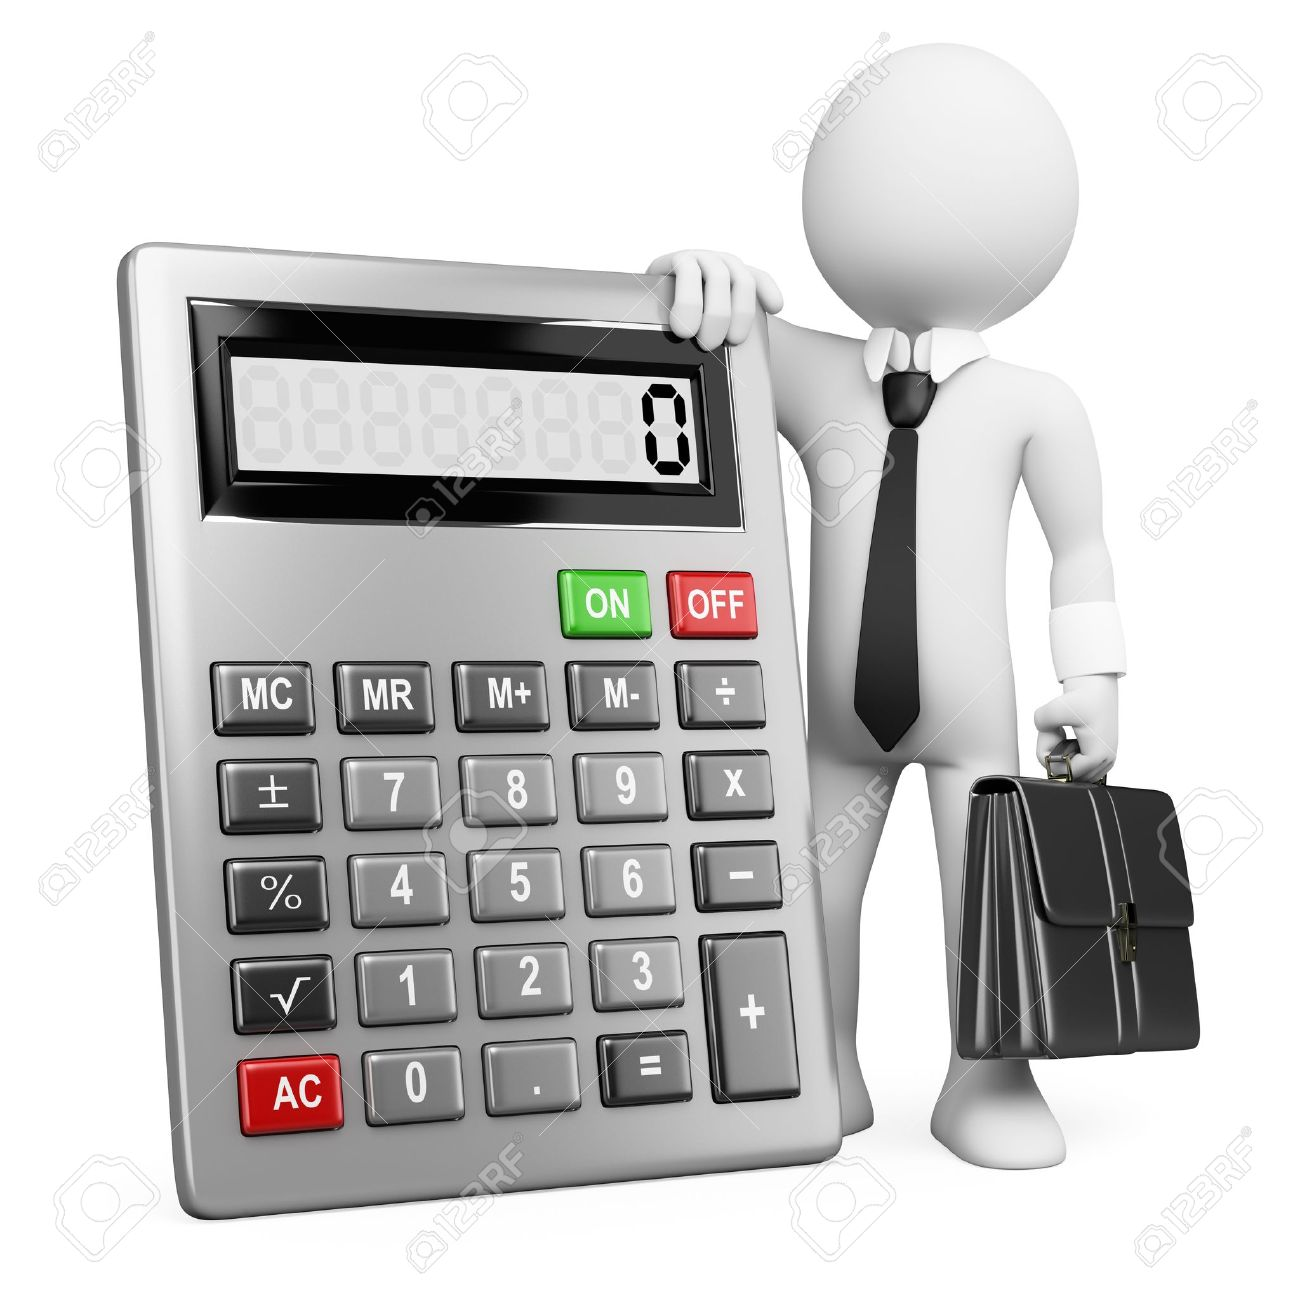 accountant job stock vector illustration and royalty accountant job 3d white business person a calculator and a briefcase 3d image